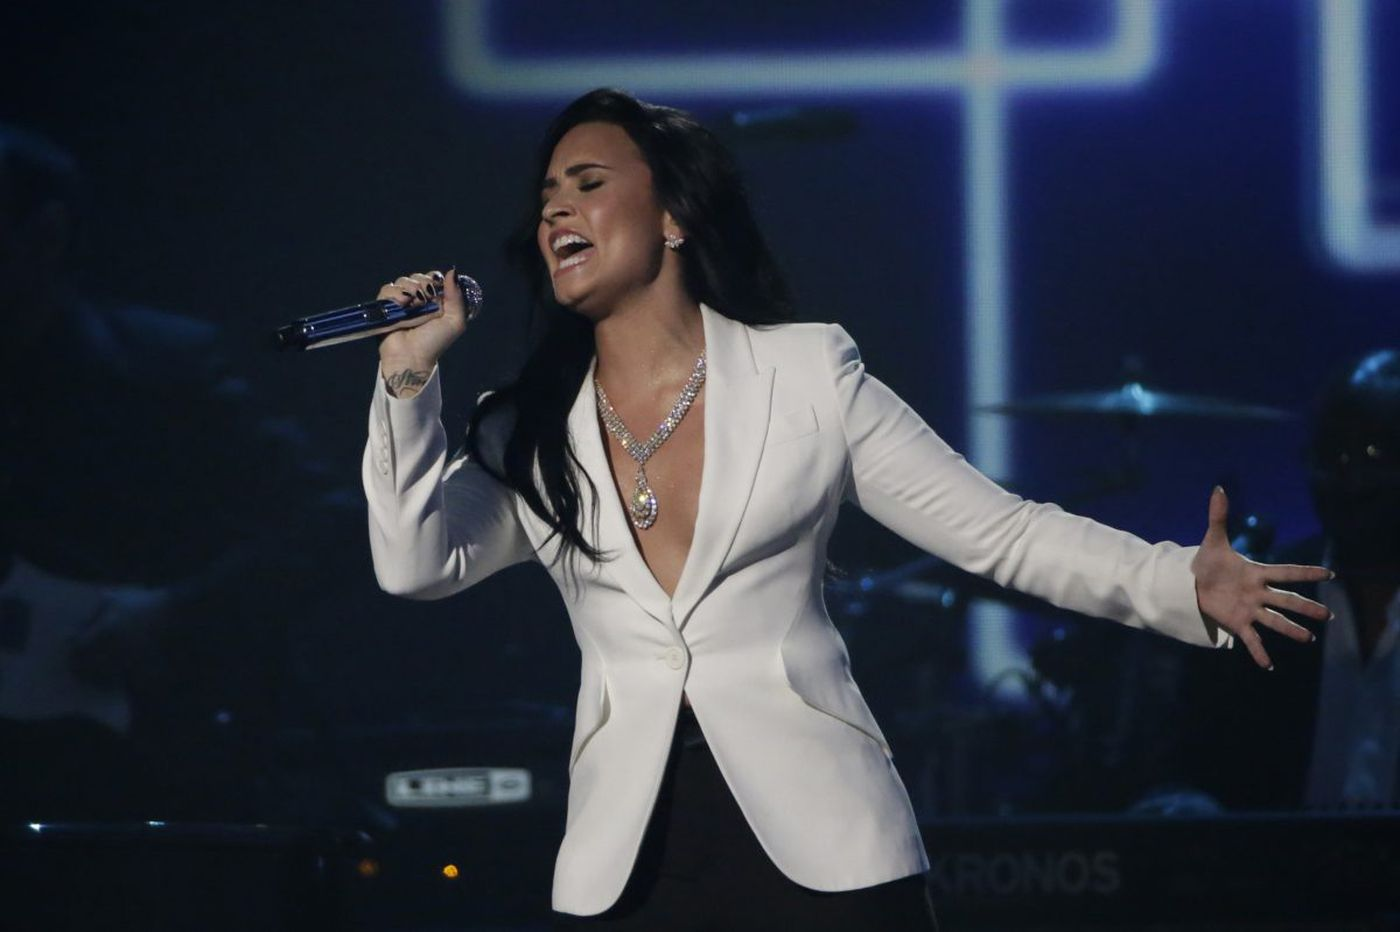 Demi Lovato to play her only East Cost date this summer at Atlantic City beach concert